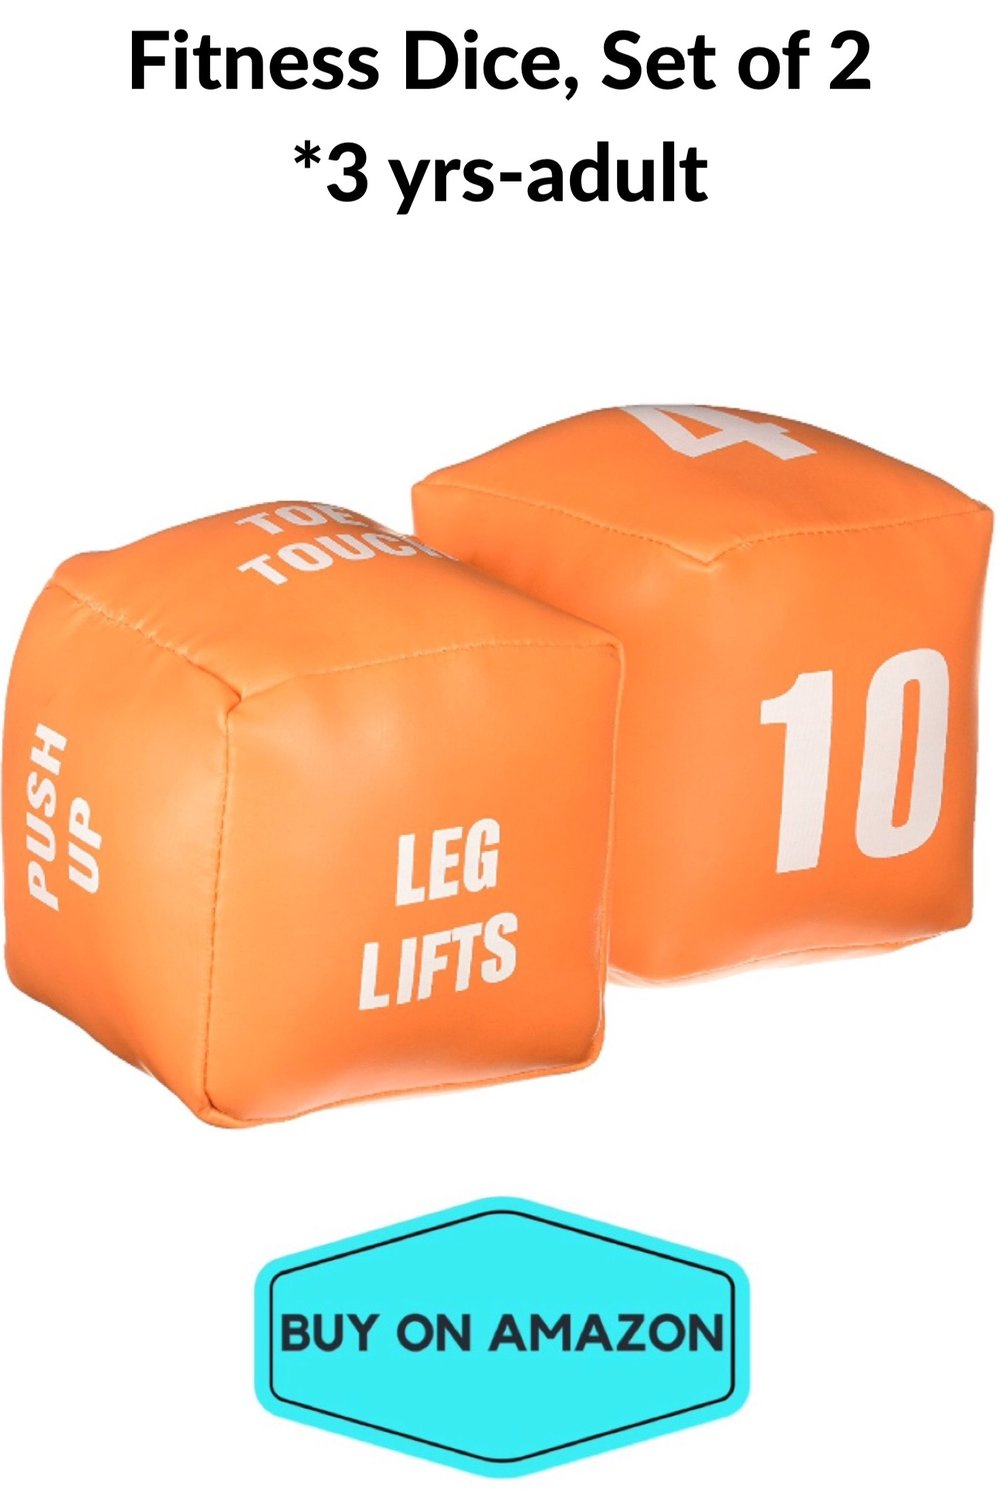 Fitness Dice, Set of 2, Ages 3-Adult